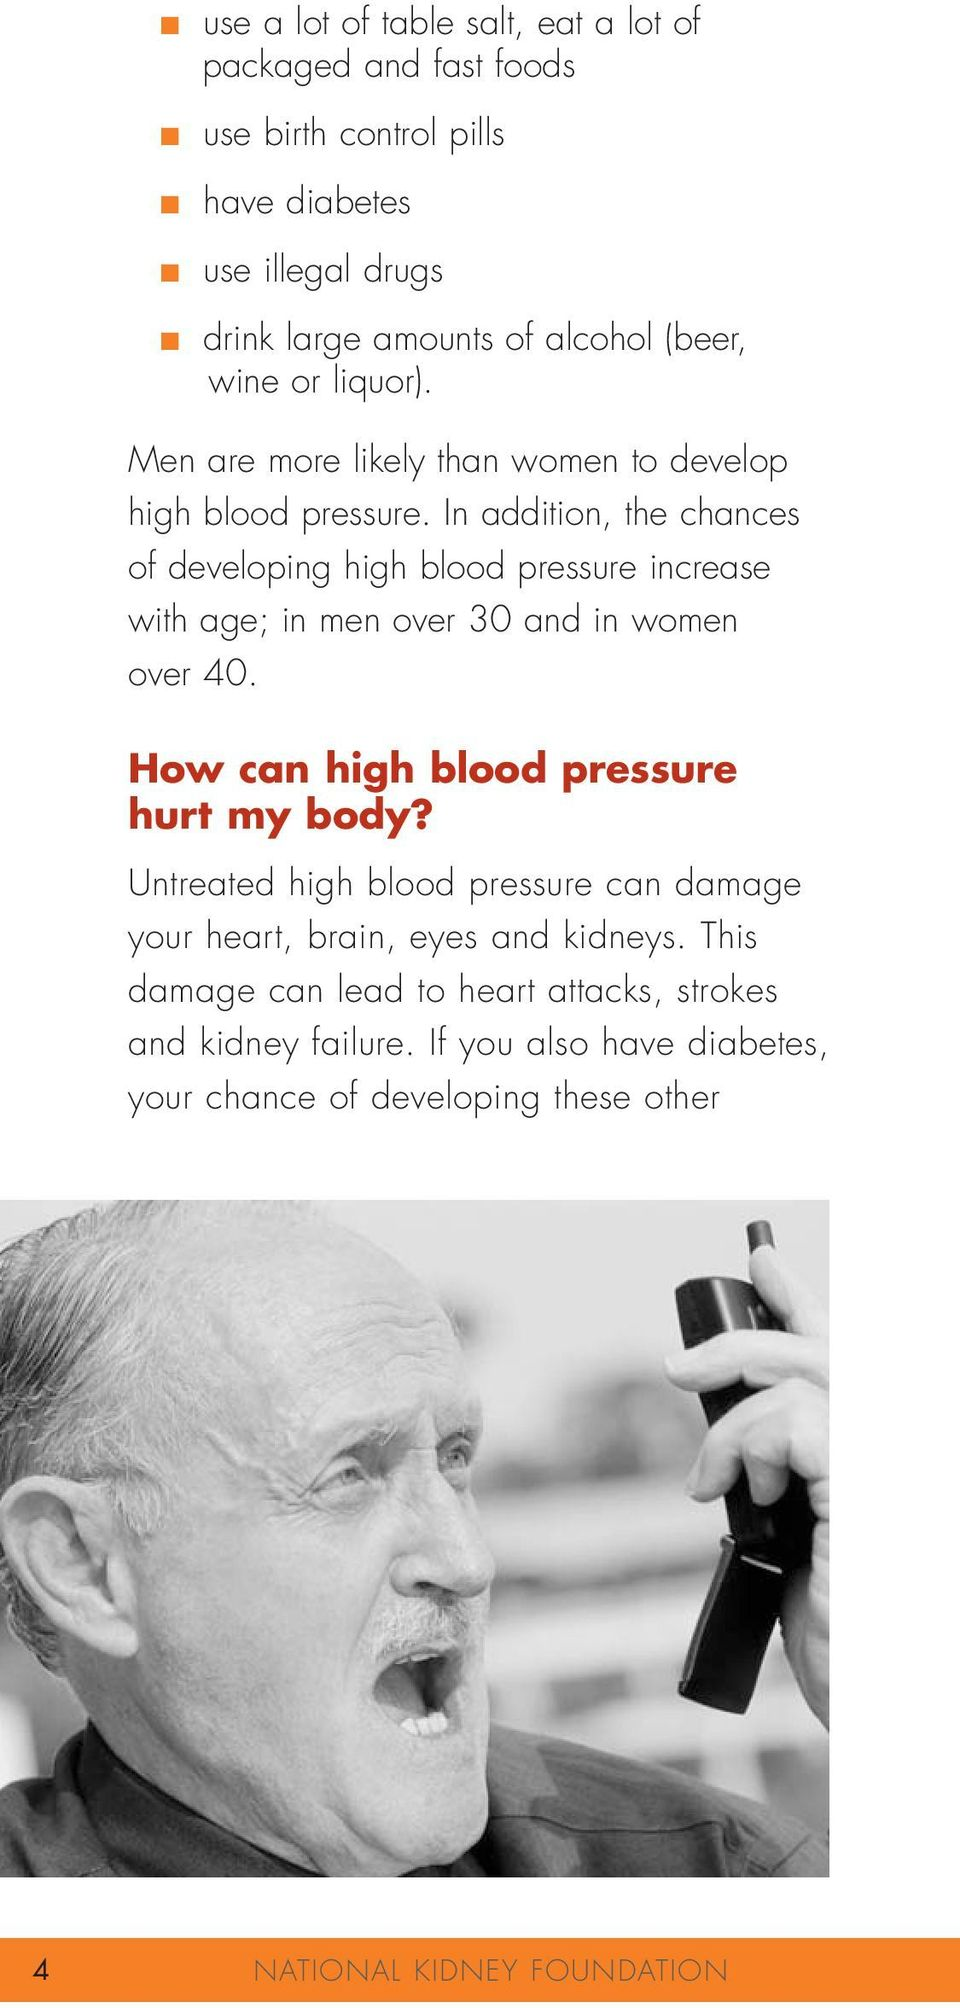 In addition, the chances of developing high blood pressure increase with age; in men over 30 and in women over 40. How can high blood pressure hurt my body?